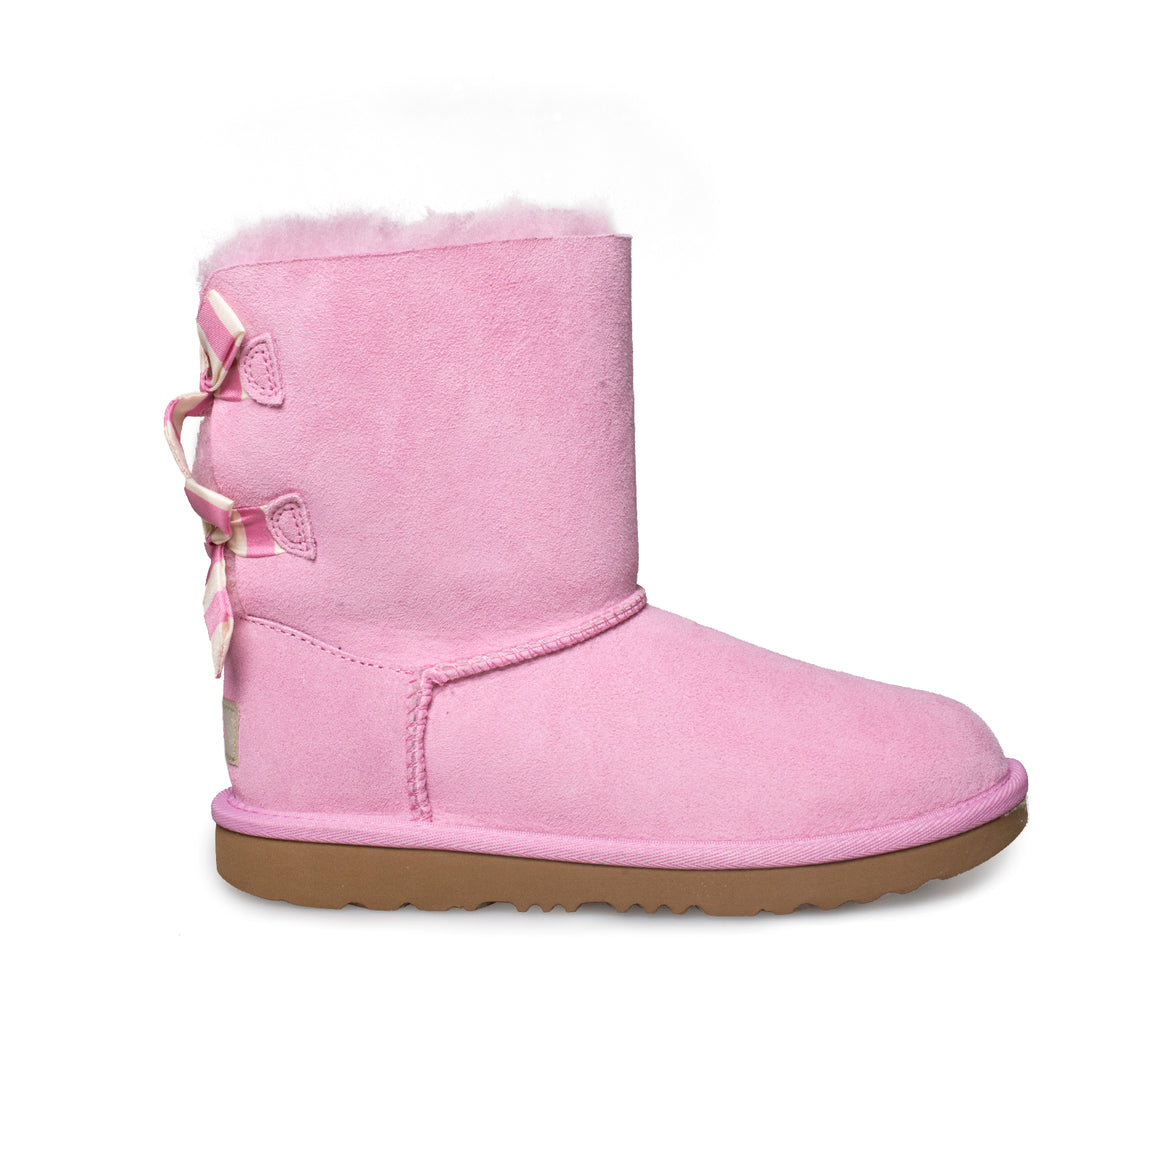 UGG Bailey Bow II Striped LPG Boots - Kid's